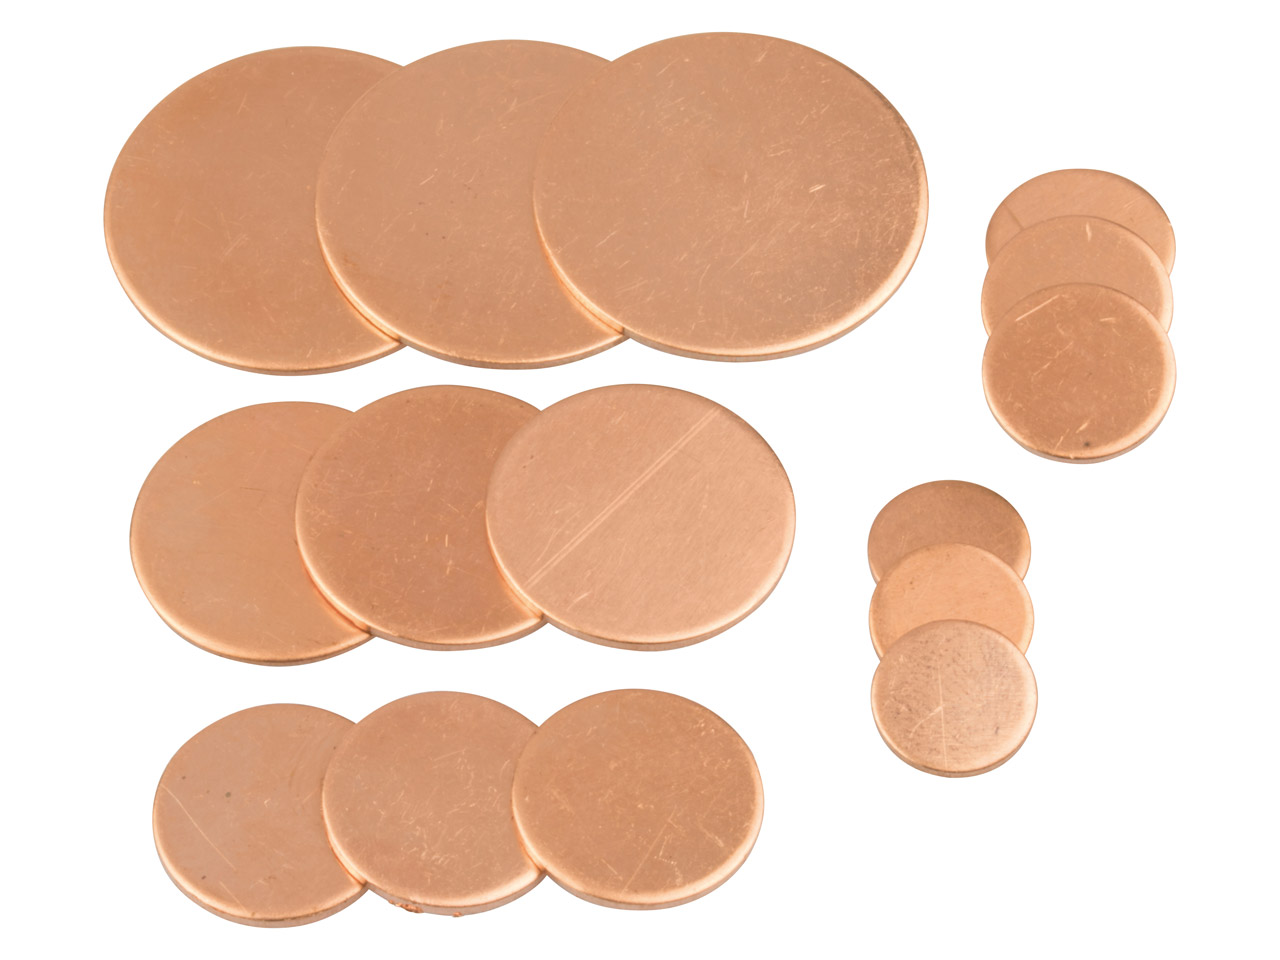 Copper Blanks Mixed Set, Discs Mix 10mm To 25mm